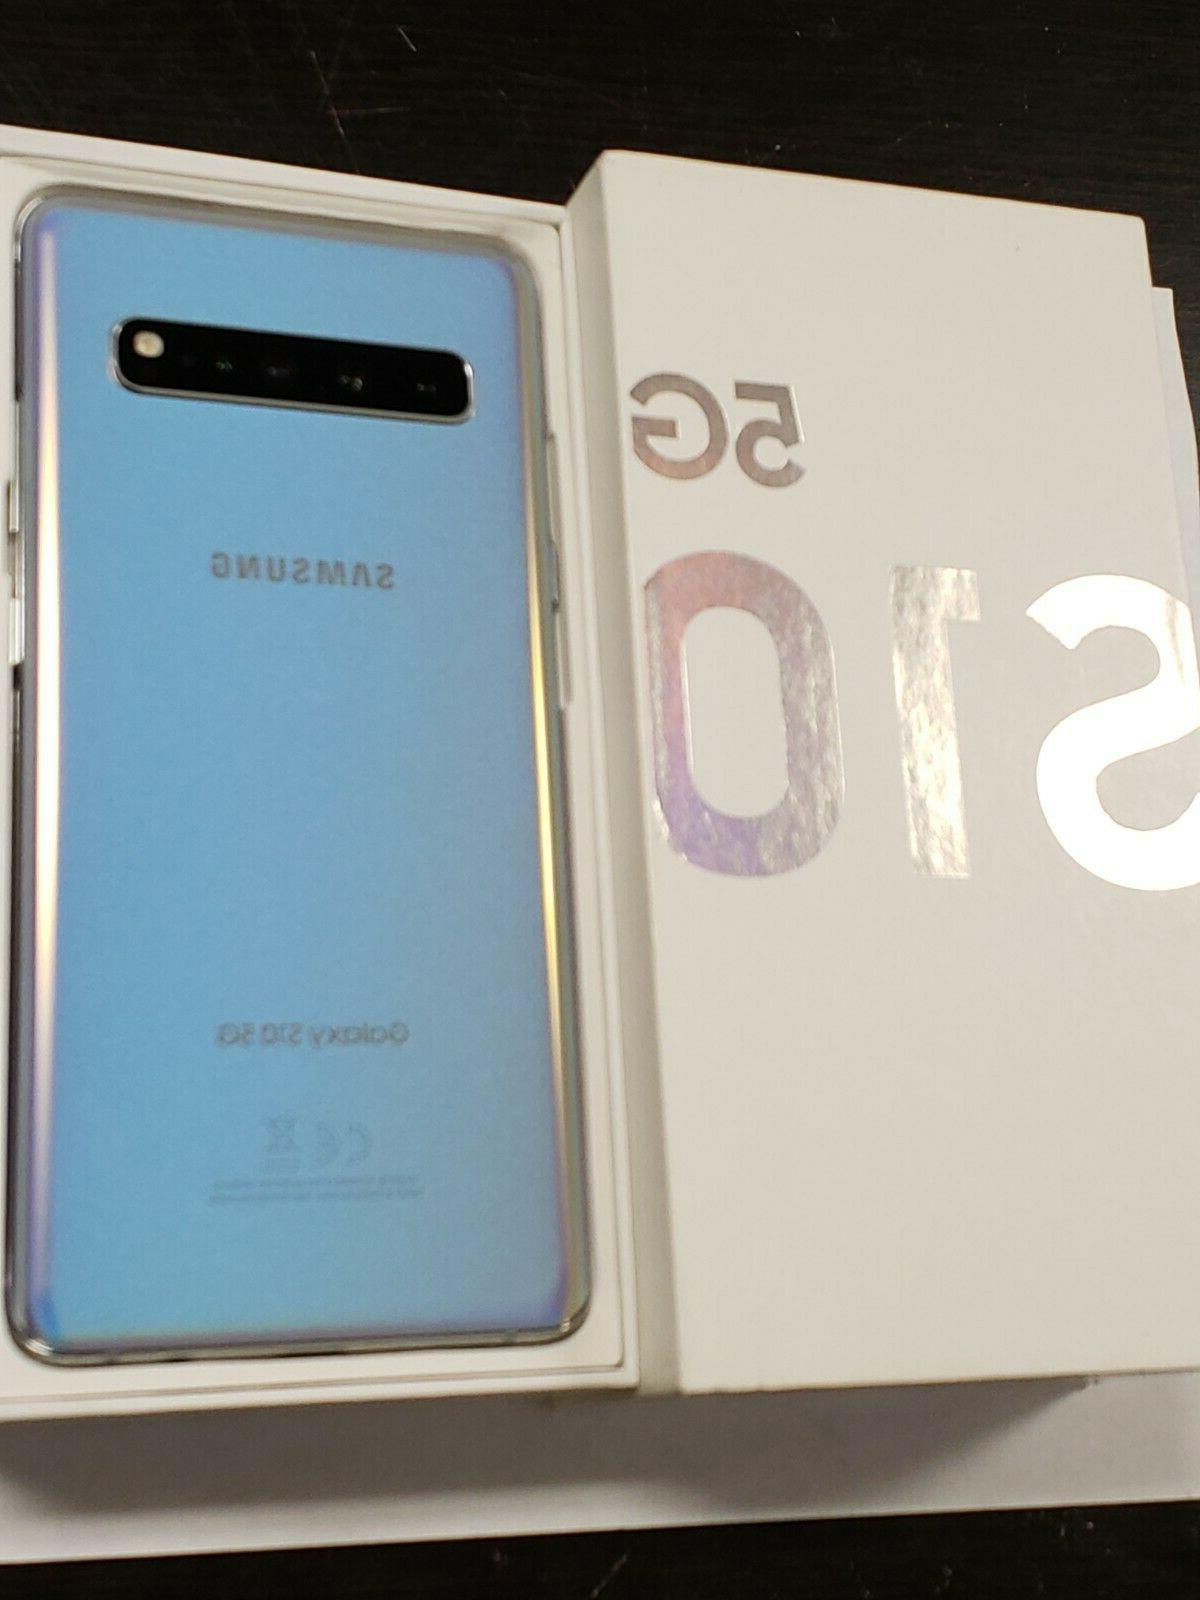 NEW Samsung 5G Crown Silver AT&T GSM